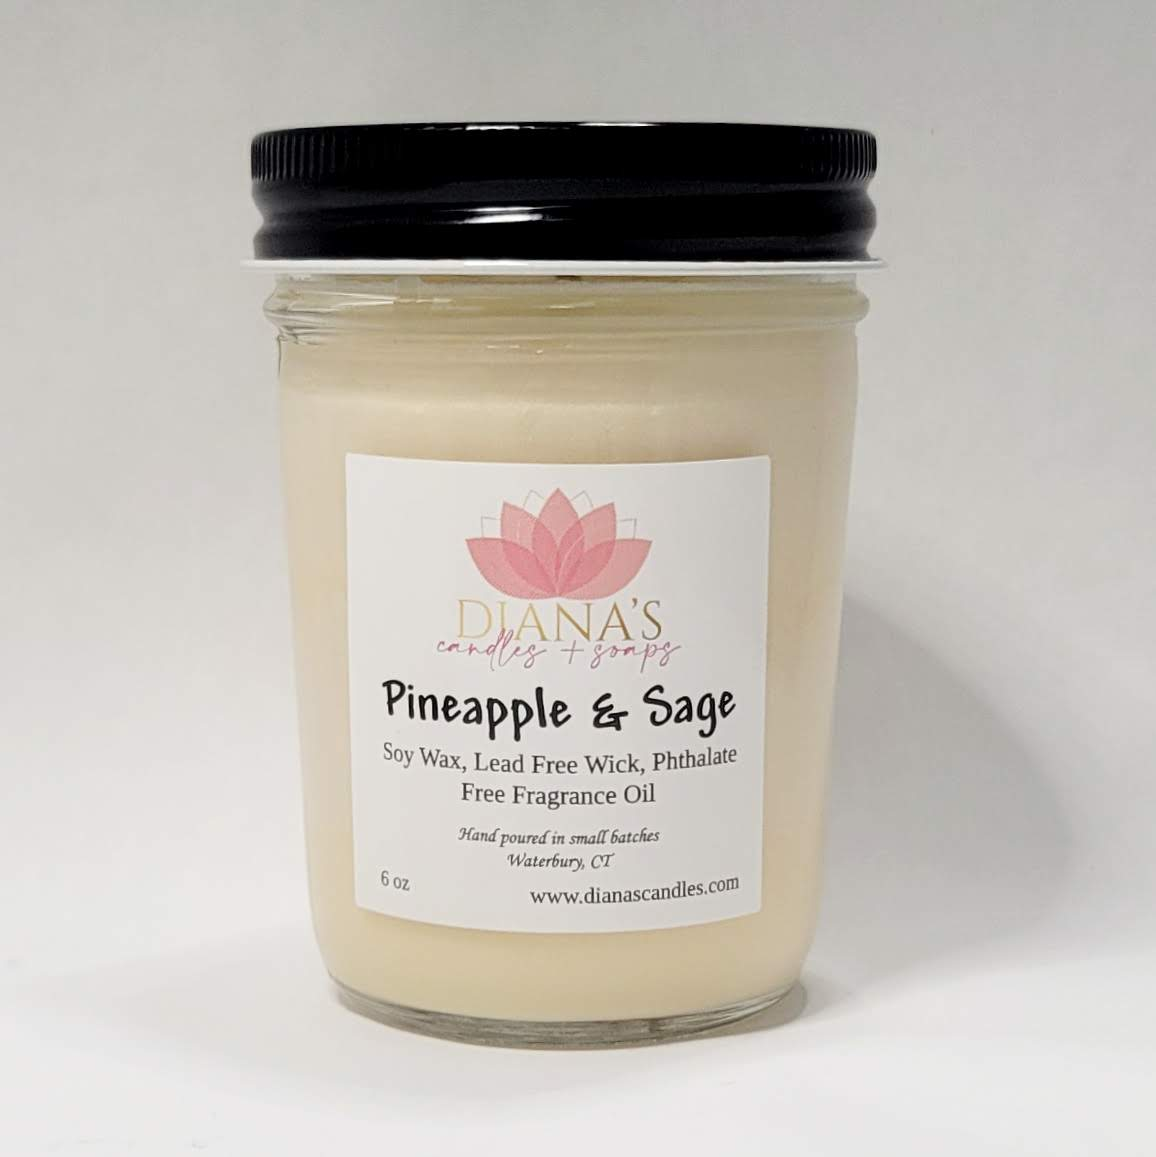 Pineapple & Sage Jar Candle